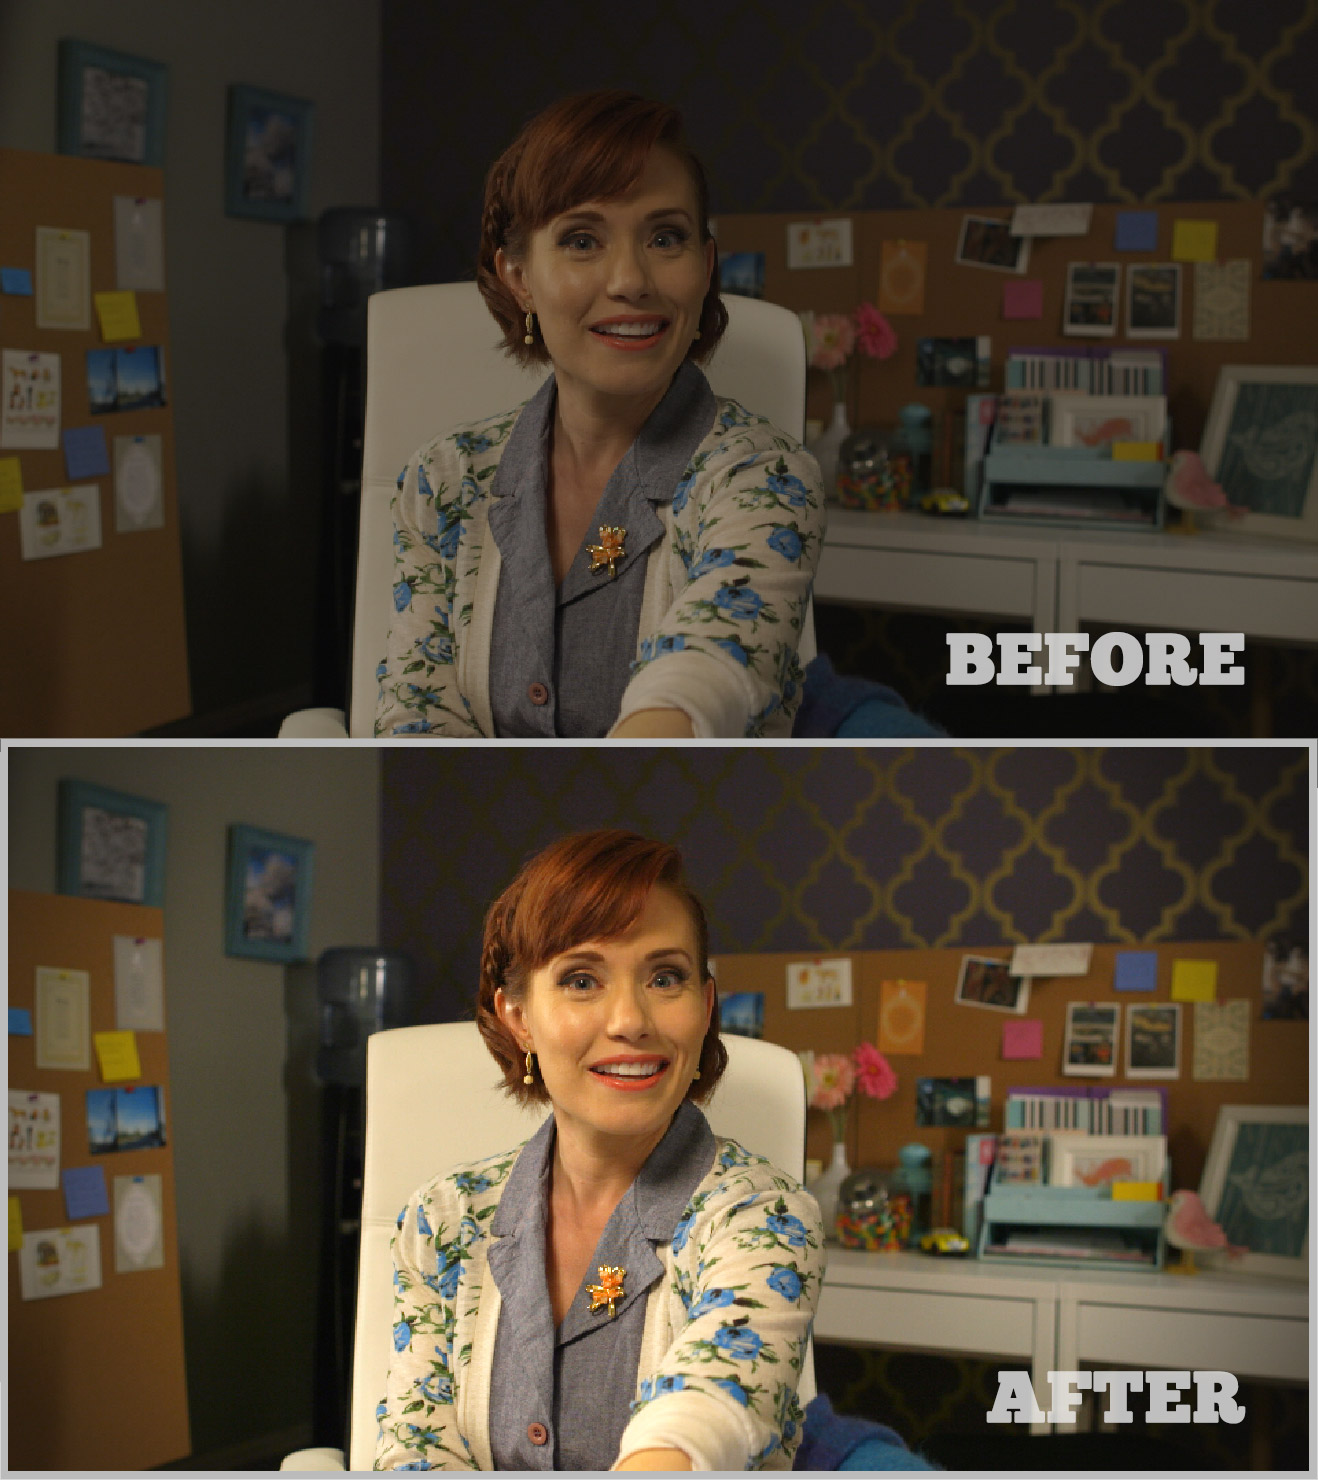 cc-beforeandafter-update-wendy